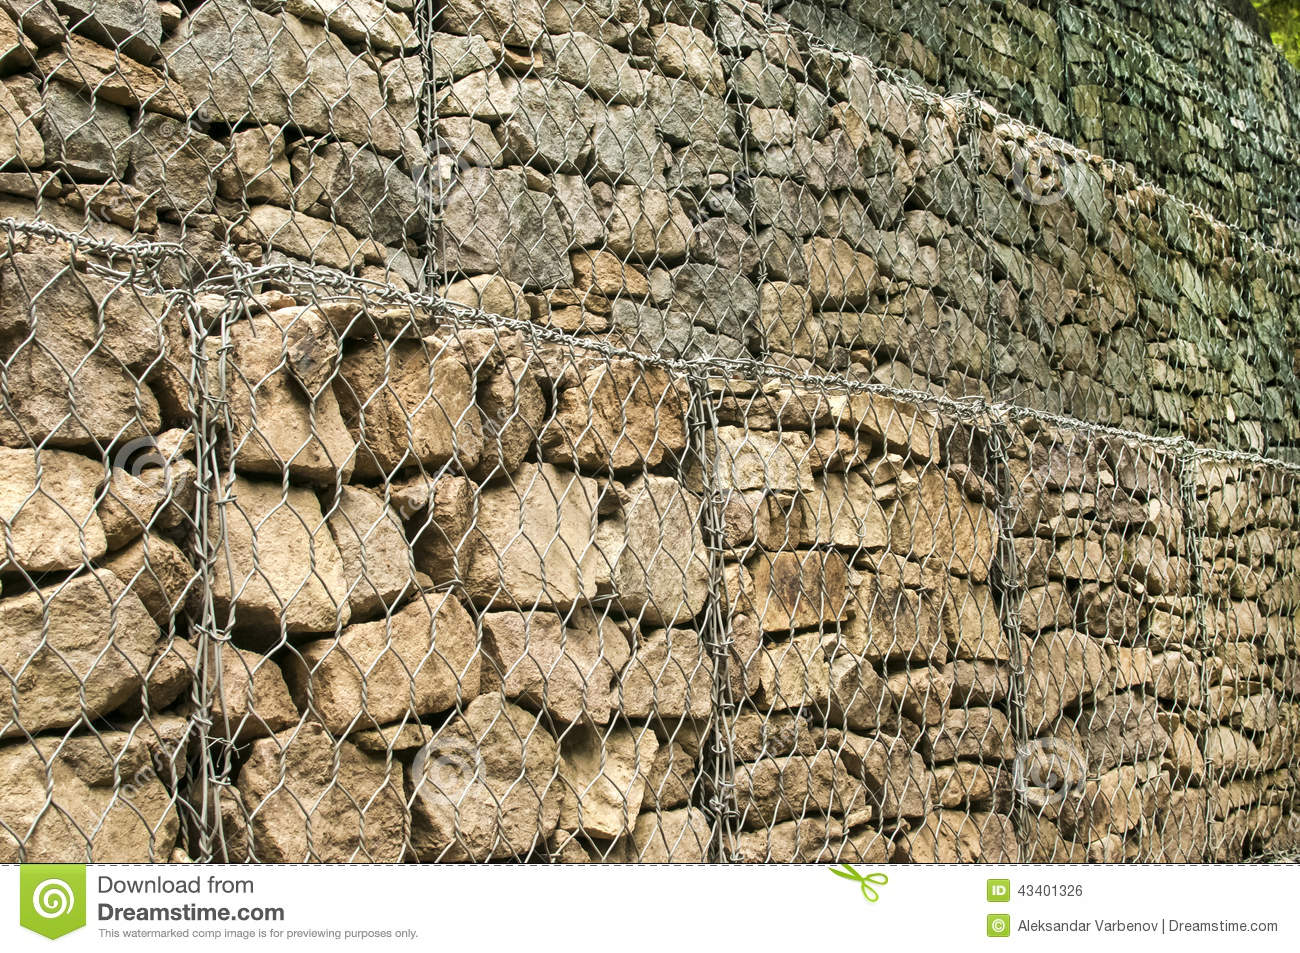 gabion baskets filled with stones stock photo image of gabion ballast 43401326. Black Bedroom Furniture Sets. Home Design Ideas